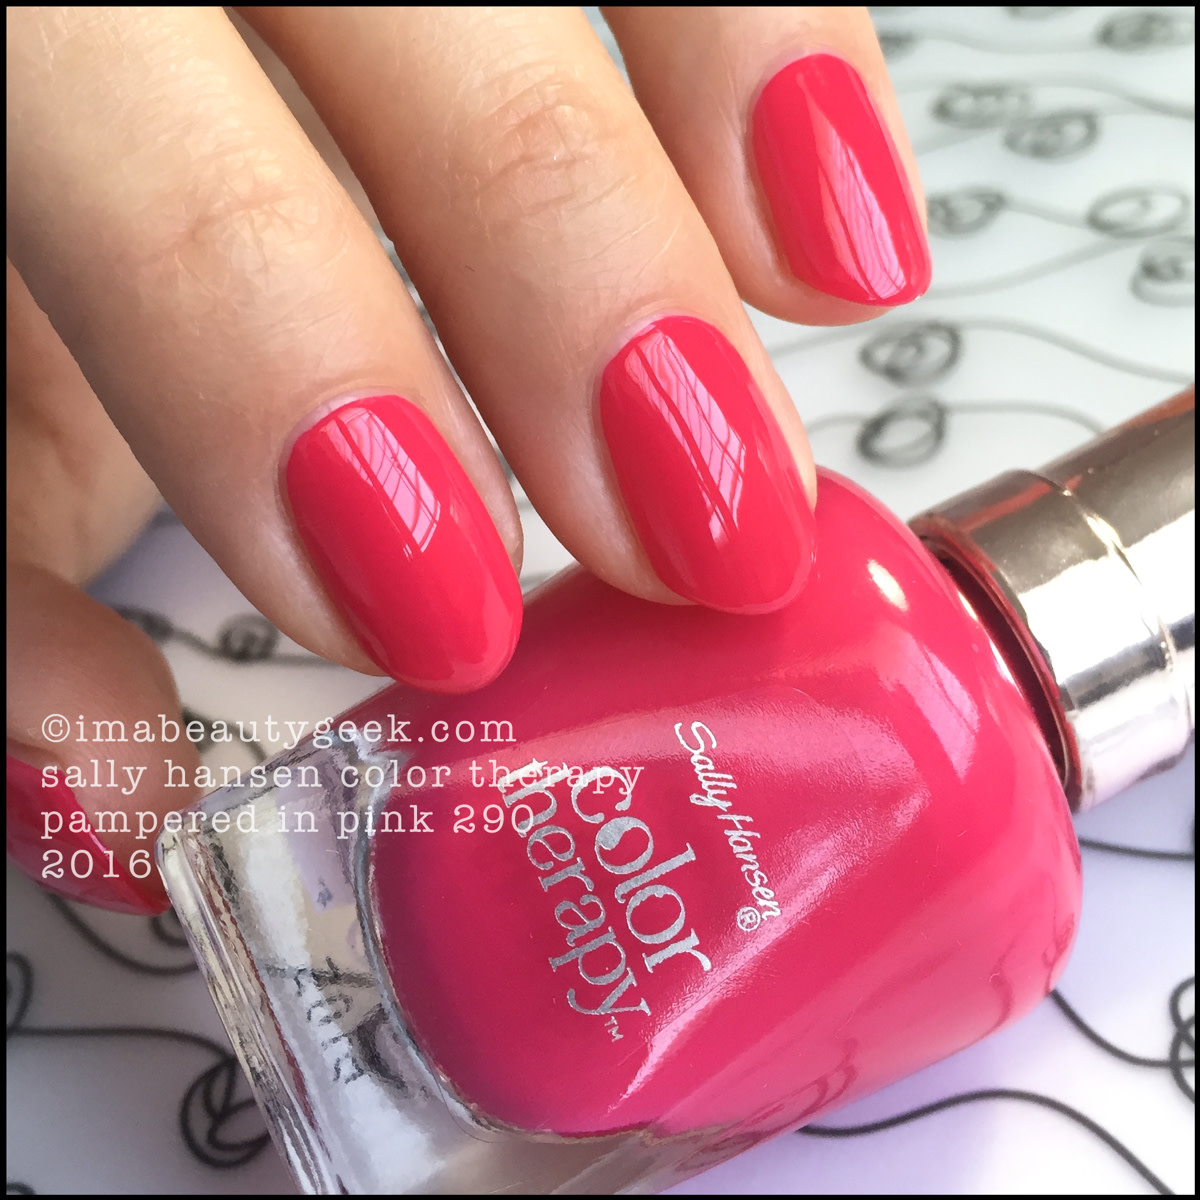 Sally Hansen Color Therapy Pampered in Pink_Sally Hansen Color Therapy Swatches Review